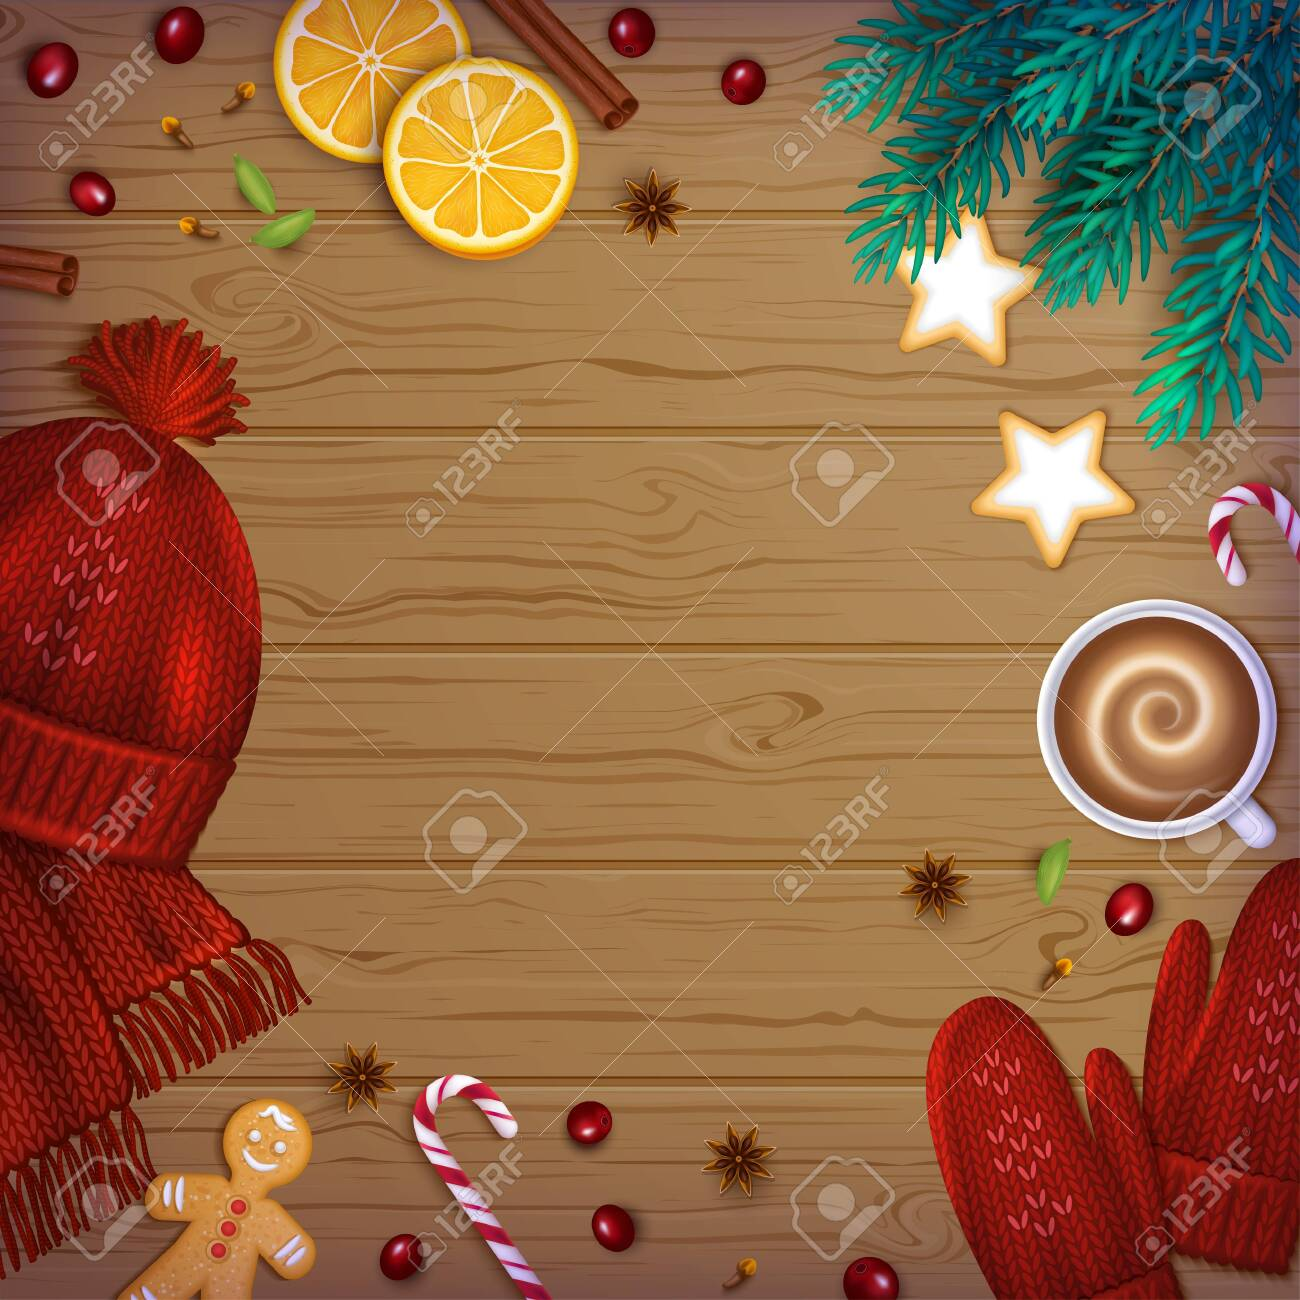 Merry Christmas and Happy New Year Greeting Background. Winter Elements fir branches, knitted red hat, mittens, cup of coffee, spice, sweets, berries, bakery on a wooden table. Top View. Vector - 156941405